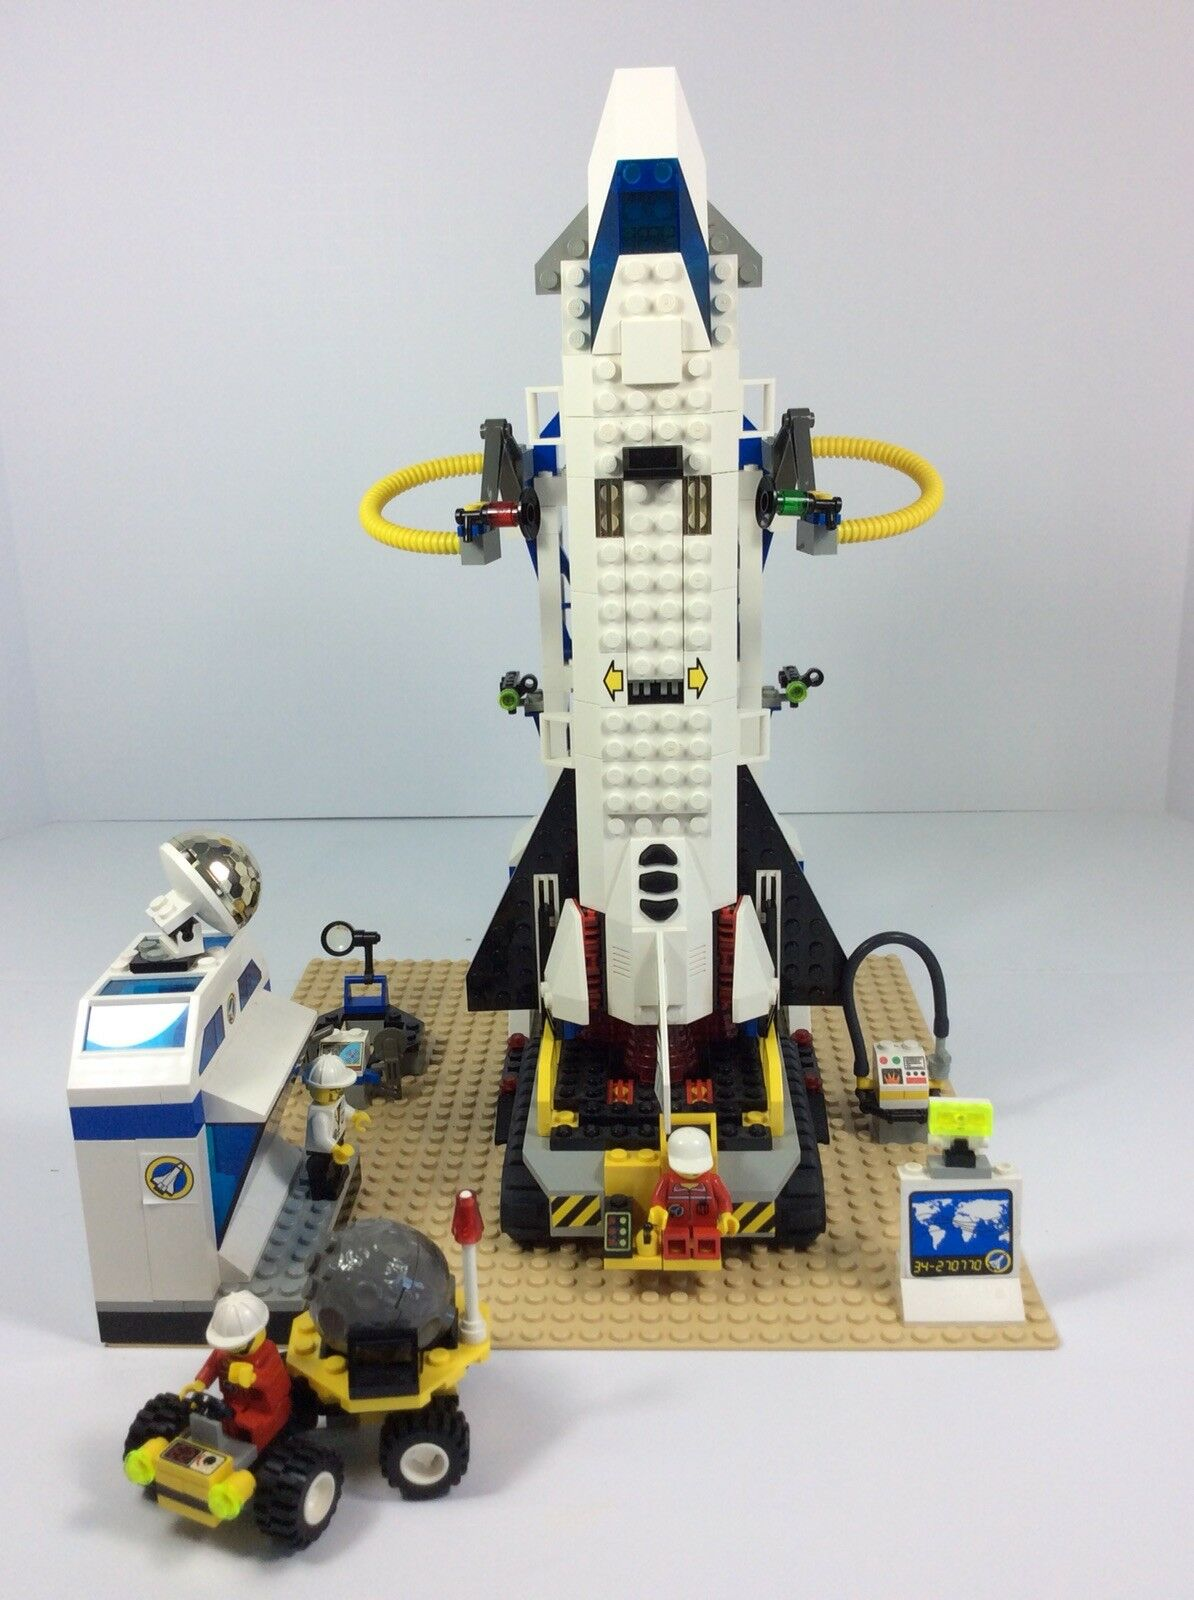 Lego System Mission Control ( 6456) 6456) 6456) 100% Pieces Complete w/ Box and Instructions d7a733